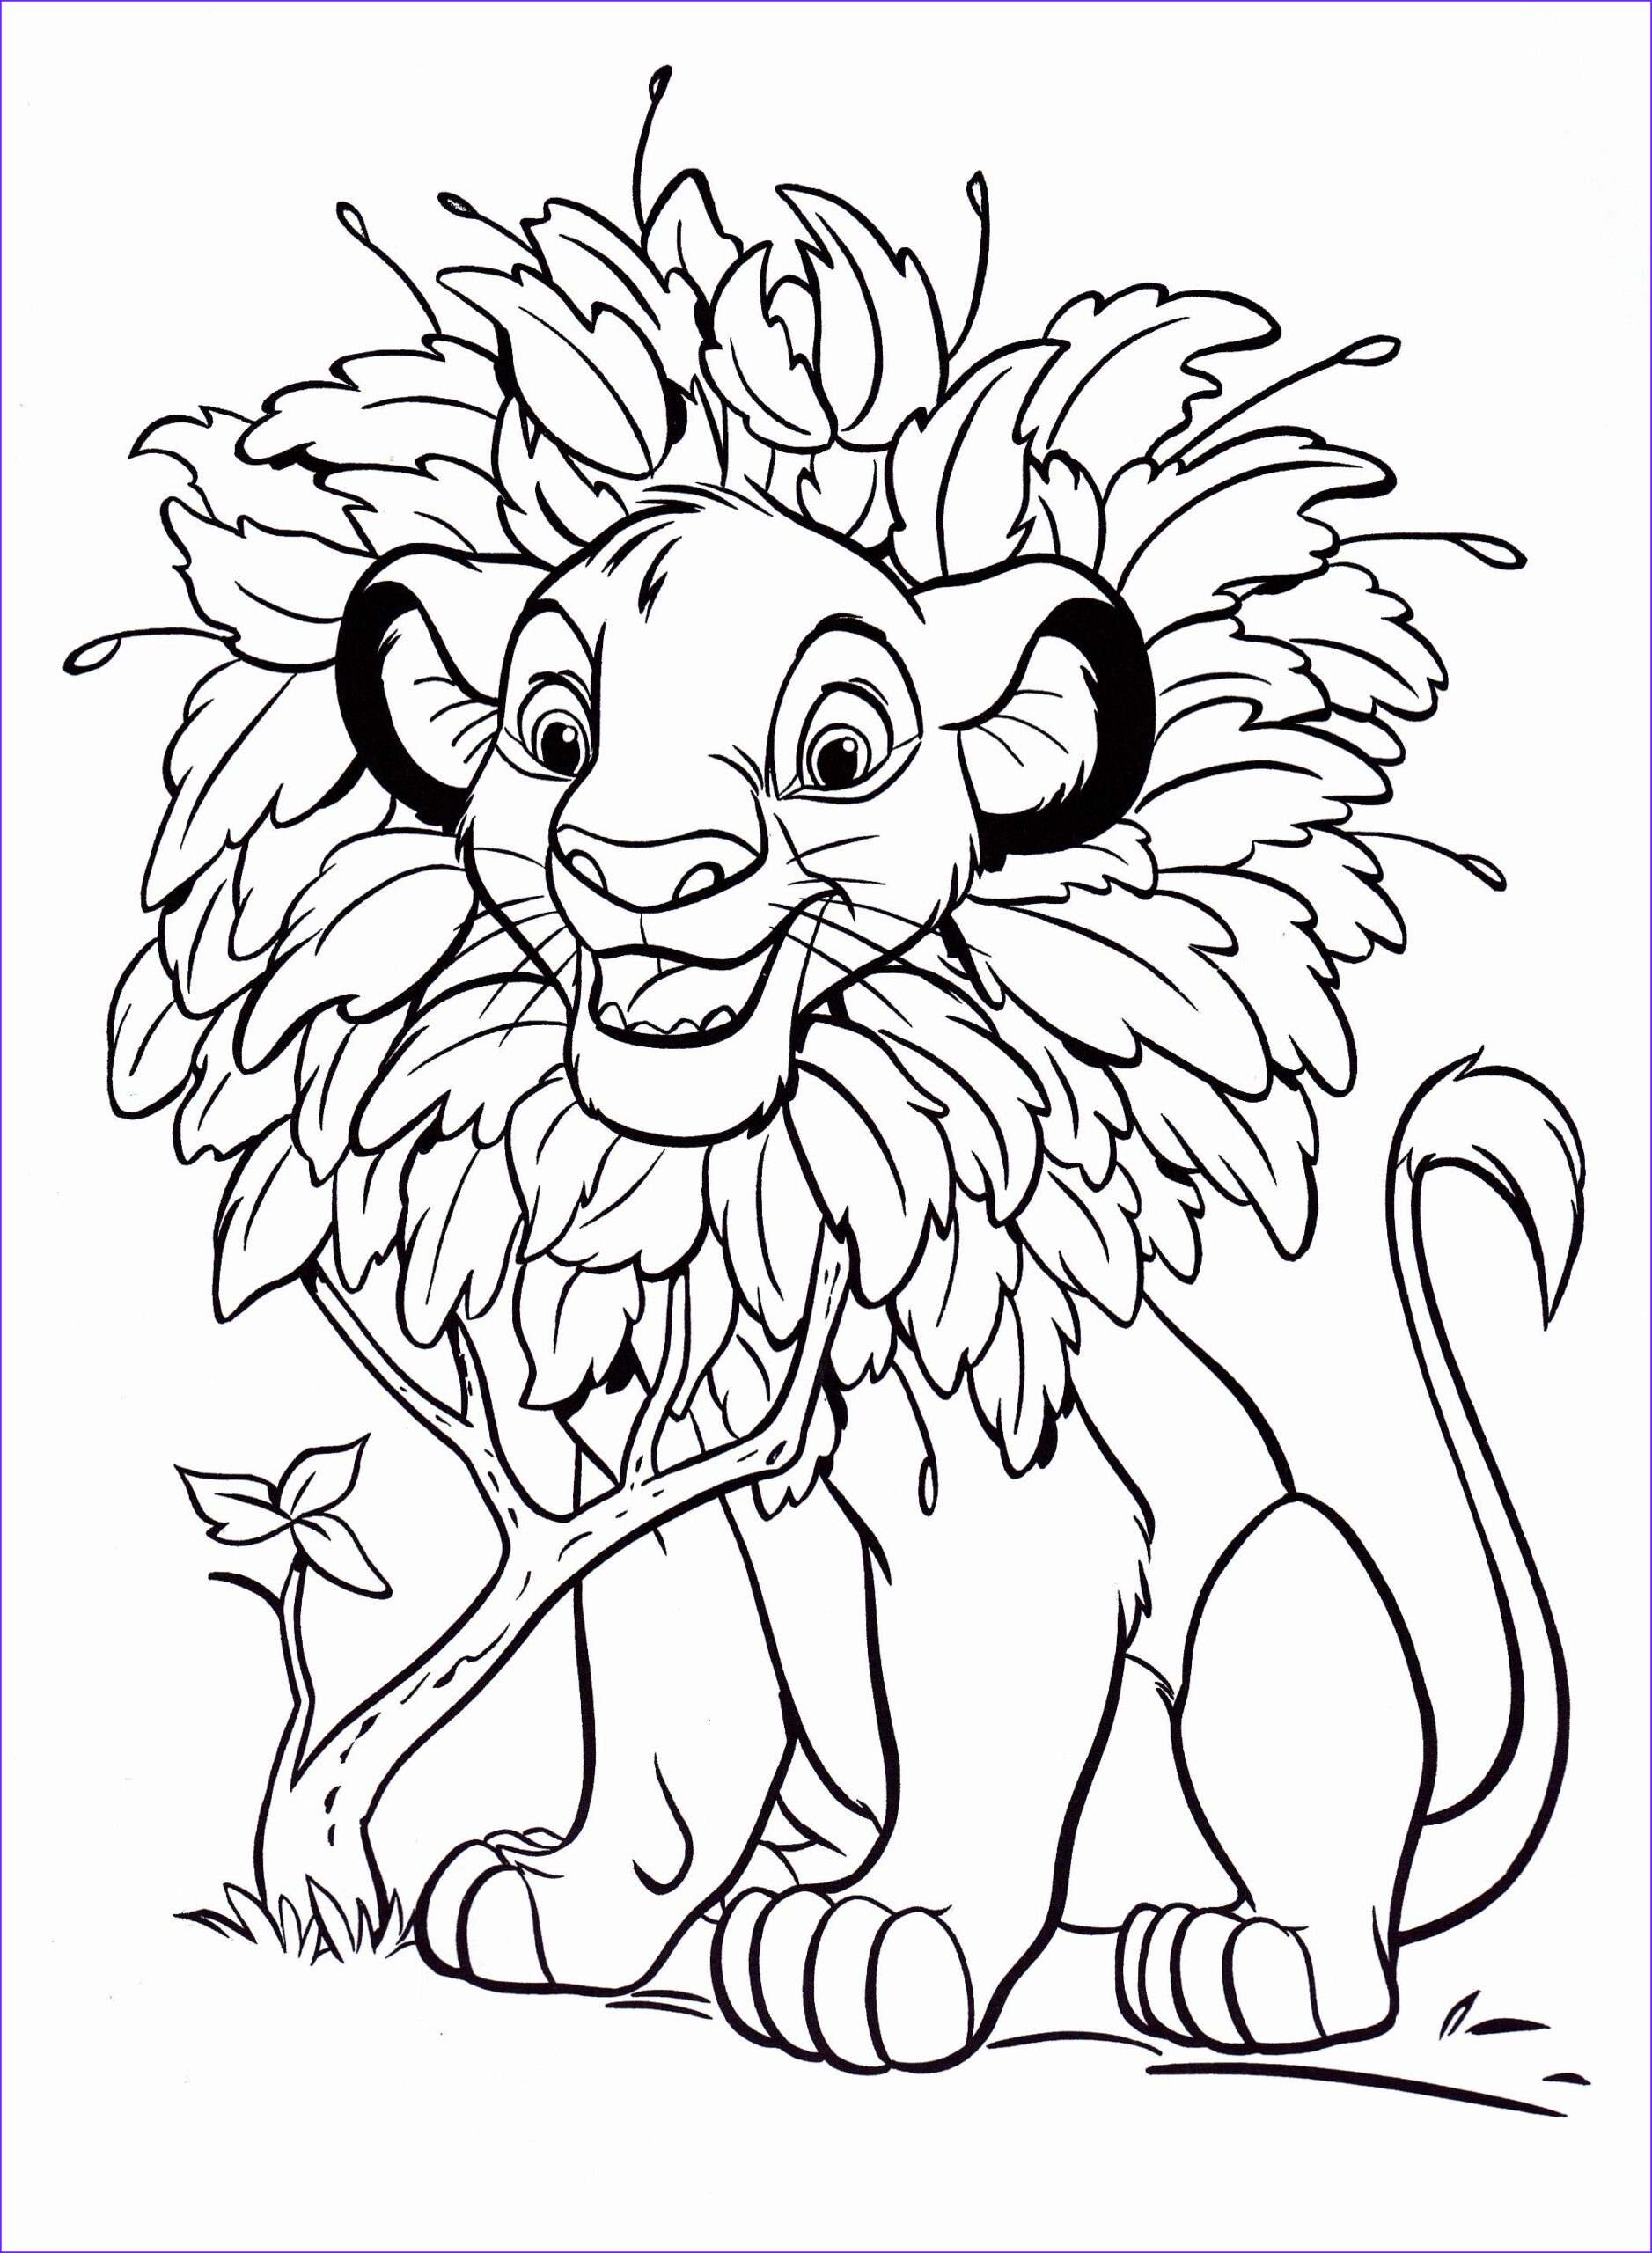 Coloring Pages for Free Beautiful Photos Free Coloring Pages Disney for Kids Image 58 Gianfreda